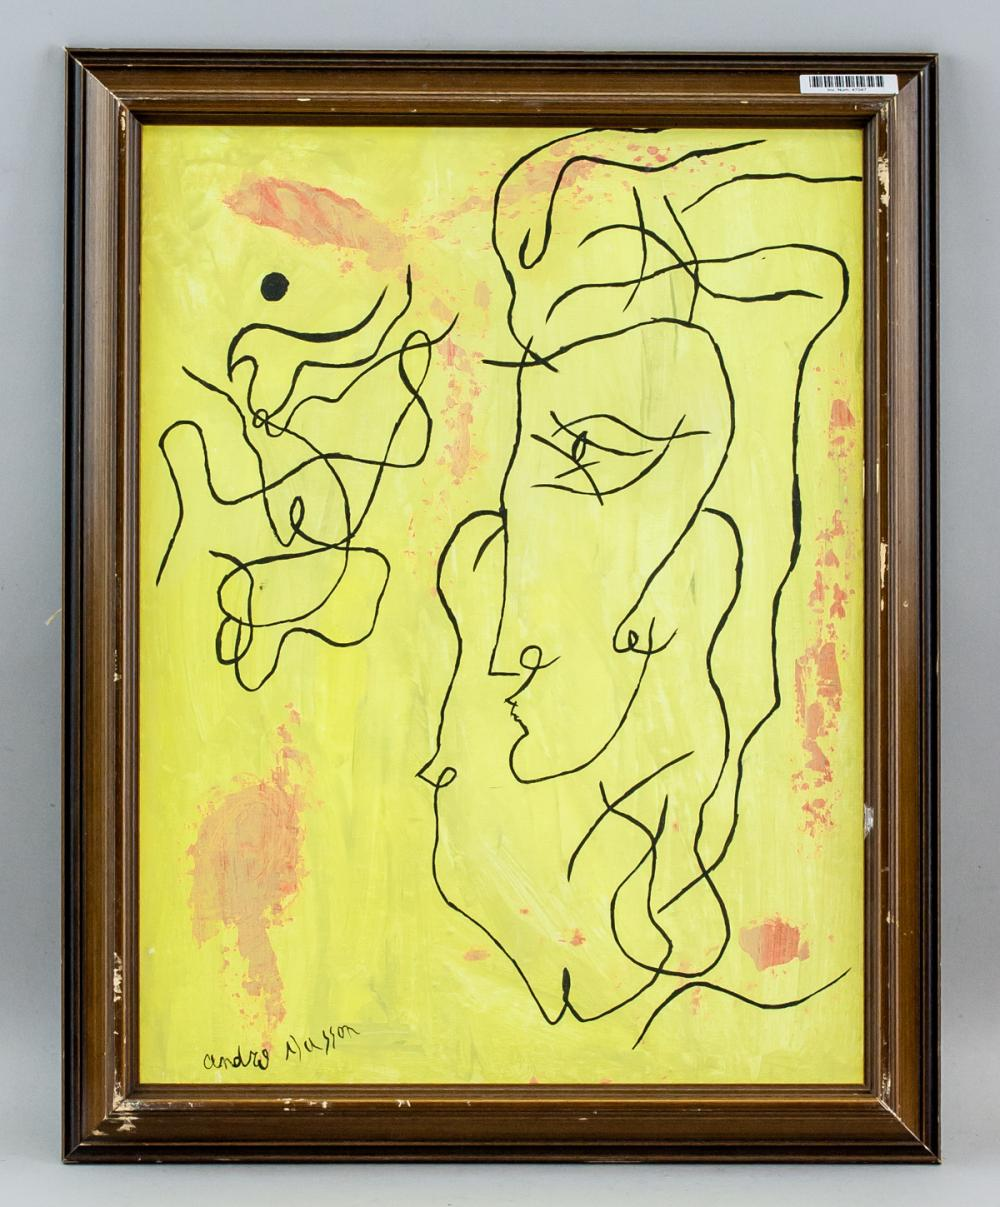 Lot 166: Andre Masson French Abstract Oil on Canvas